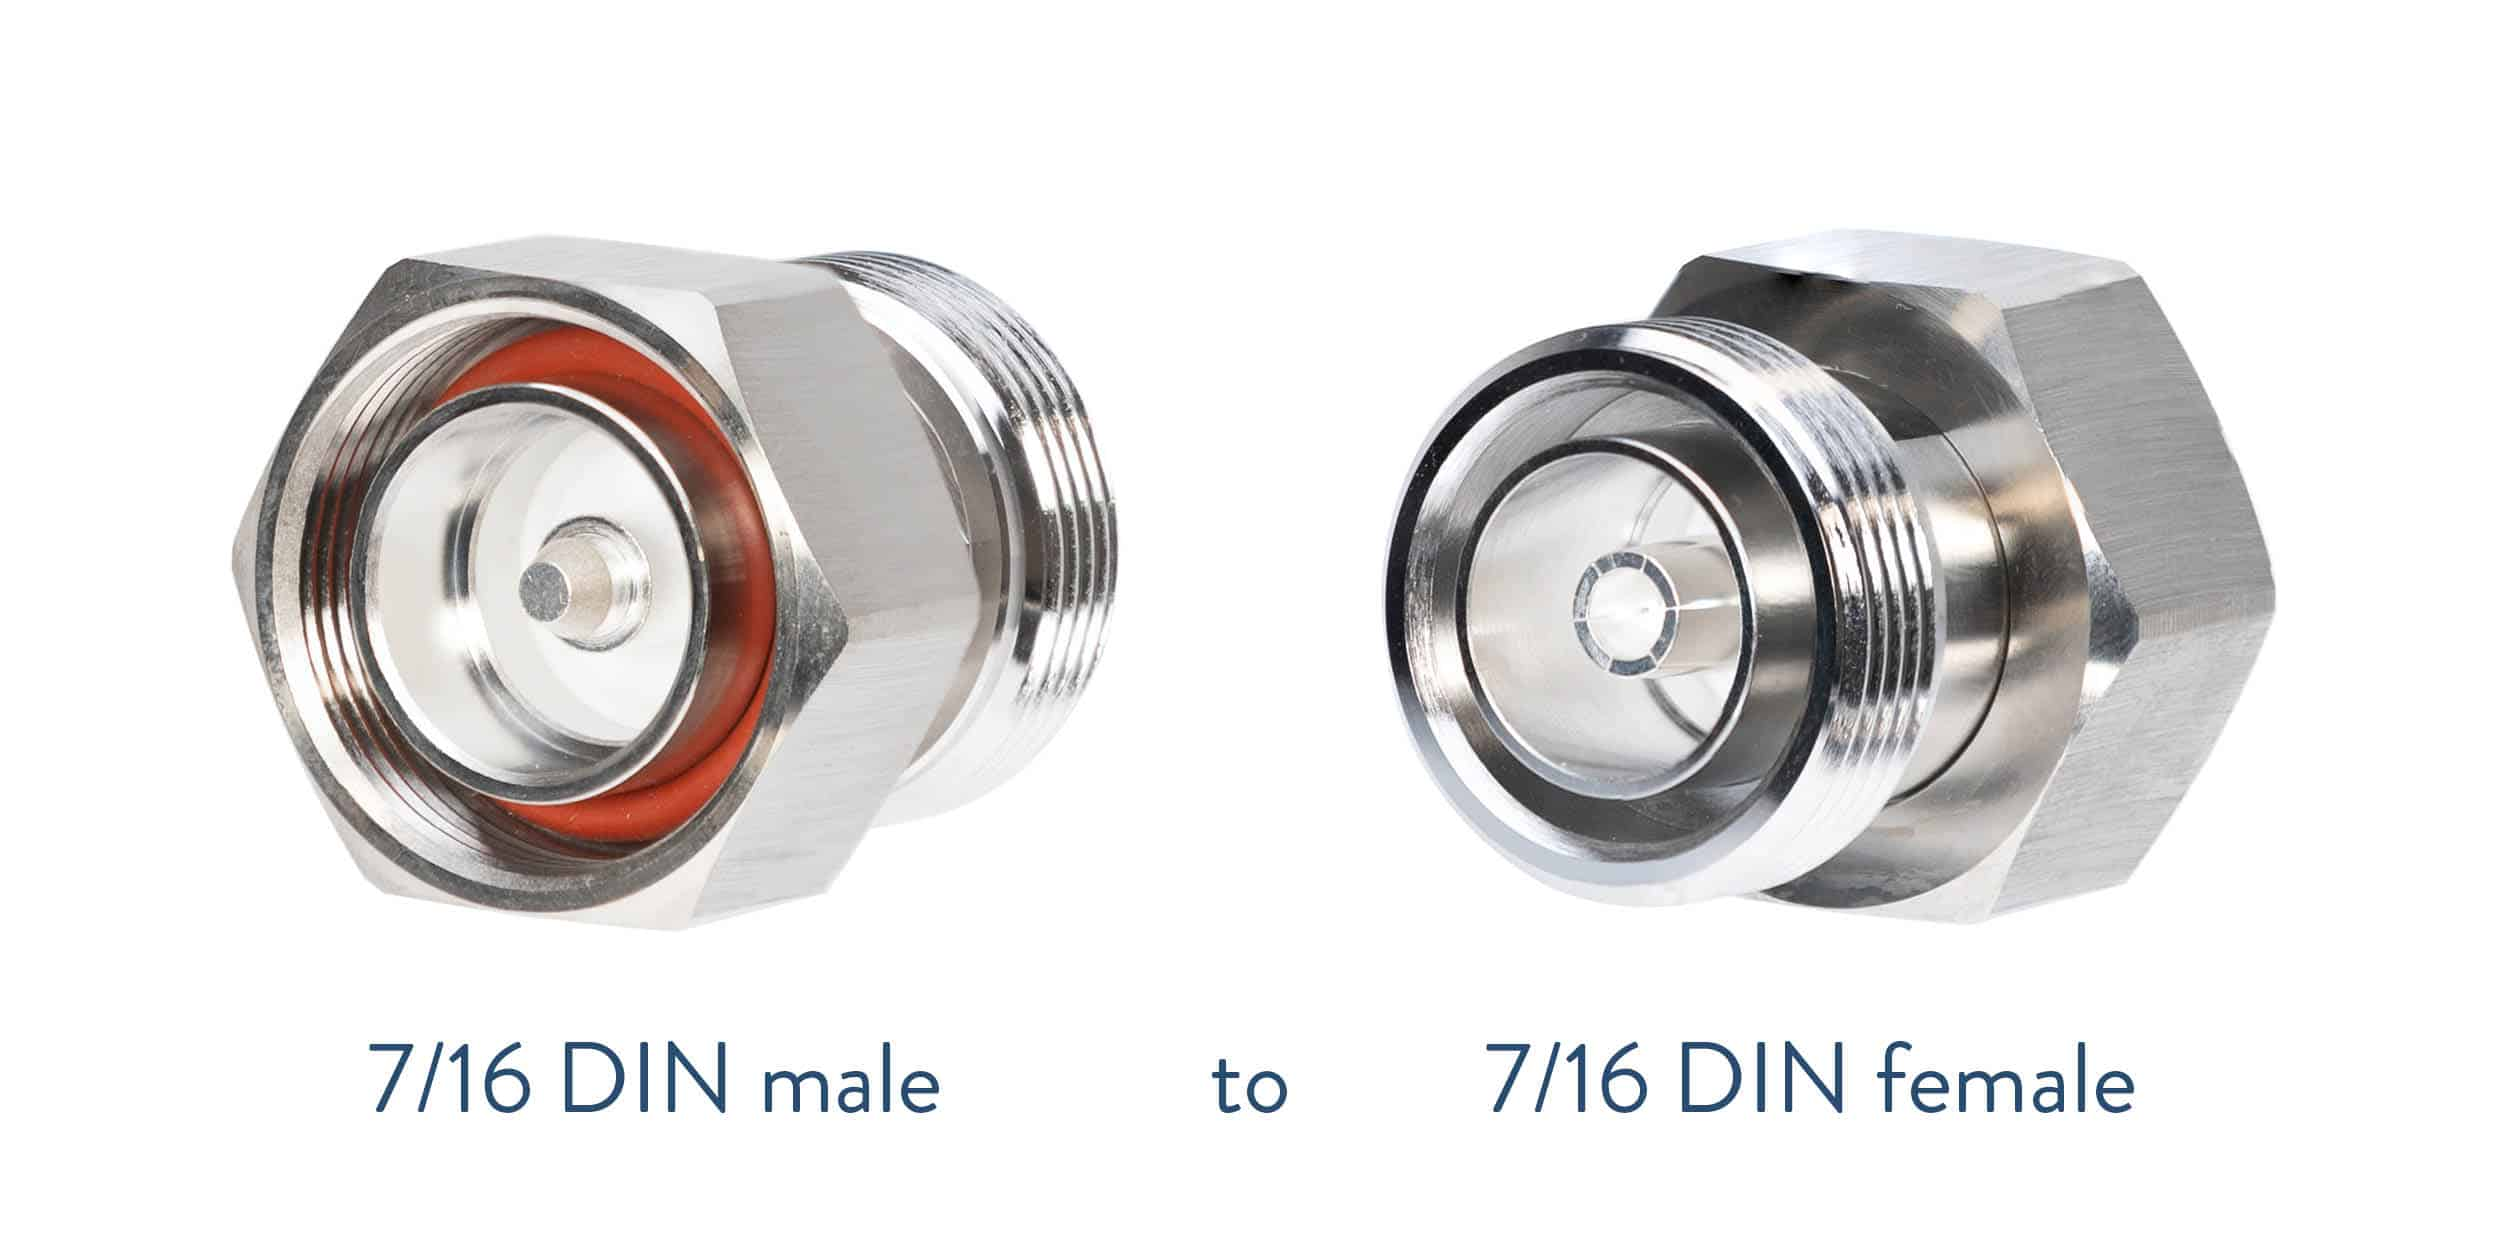 7/16 DIN to 7/16 DIN adapter